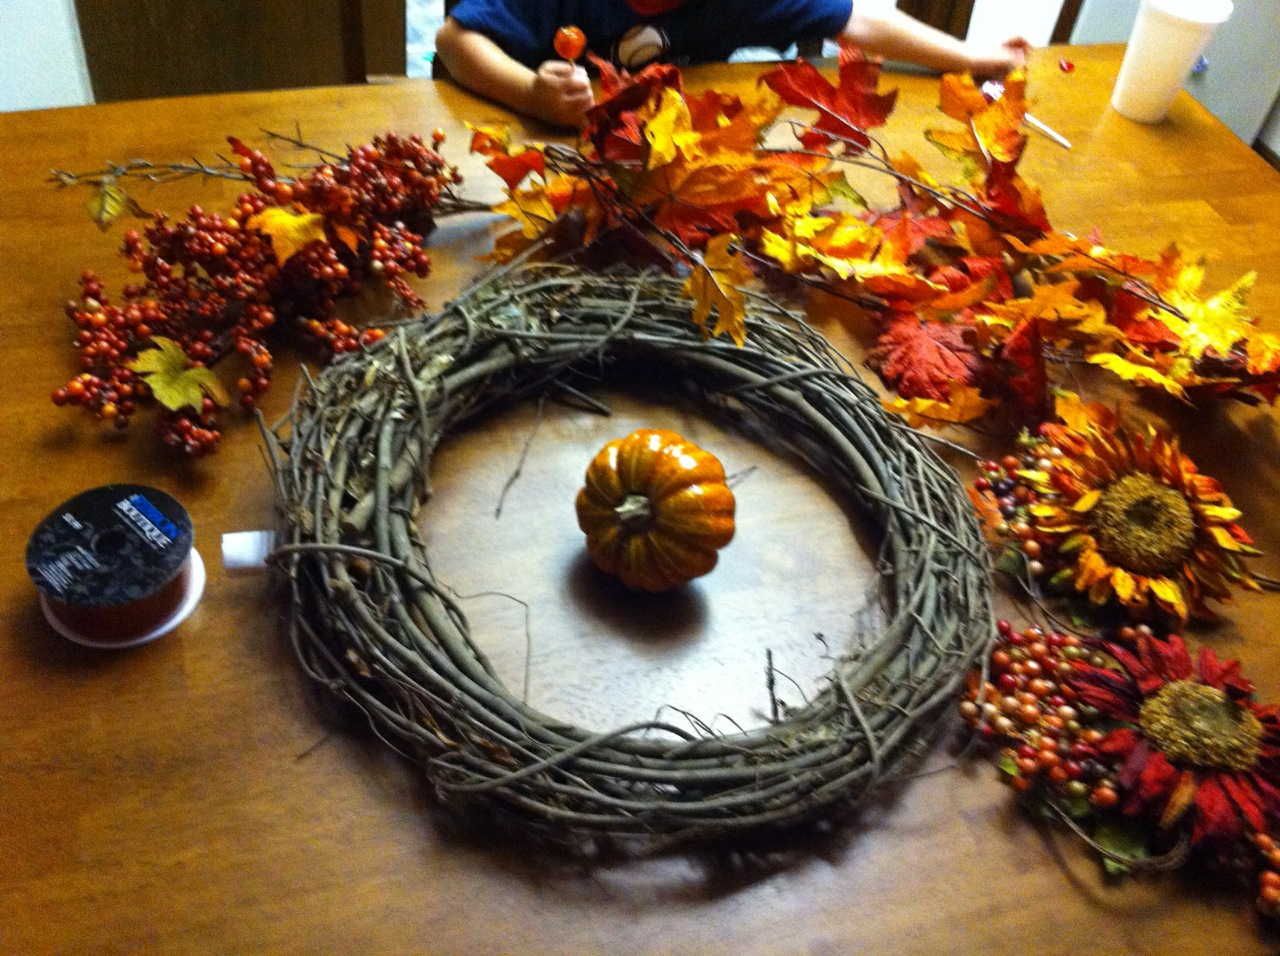 We Got A Grapevine Wreath Which I Found Out Am Allergic To Fall Garland Some Flowers Couple Pumpkins Colored Berries And Pretty